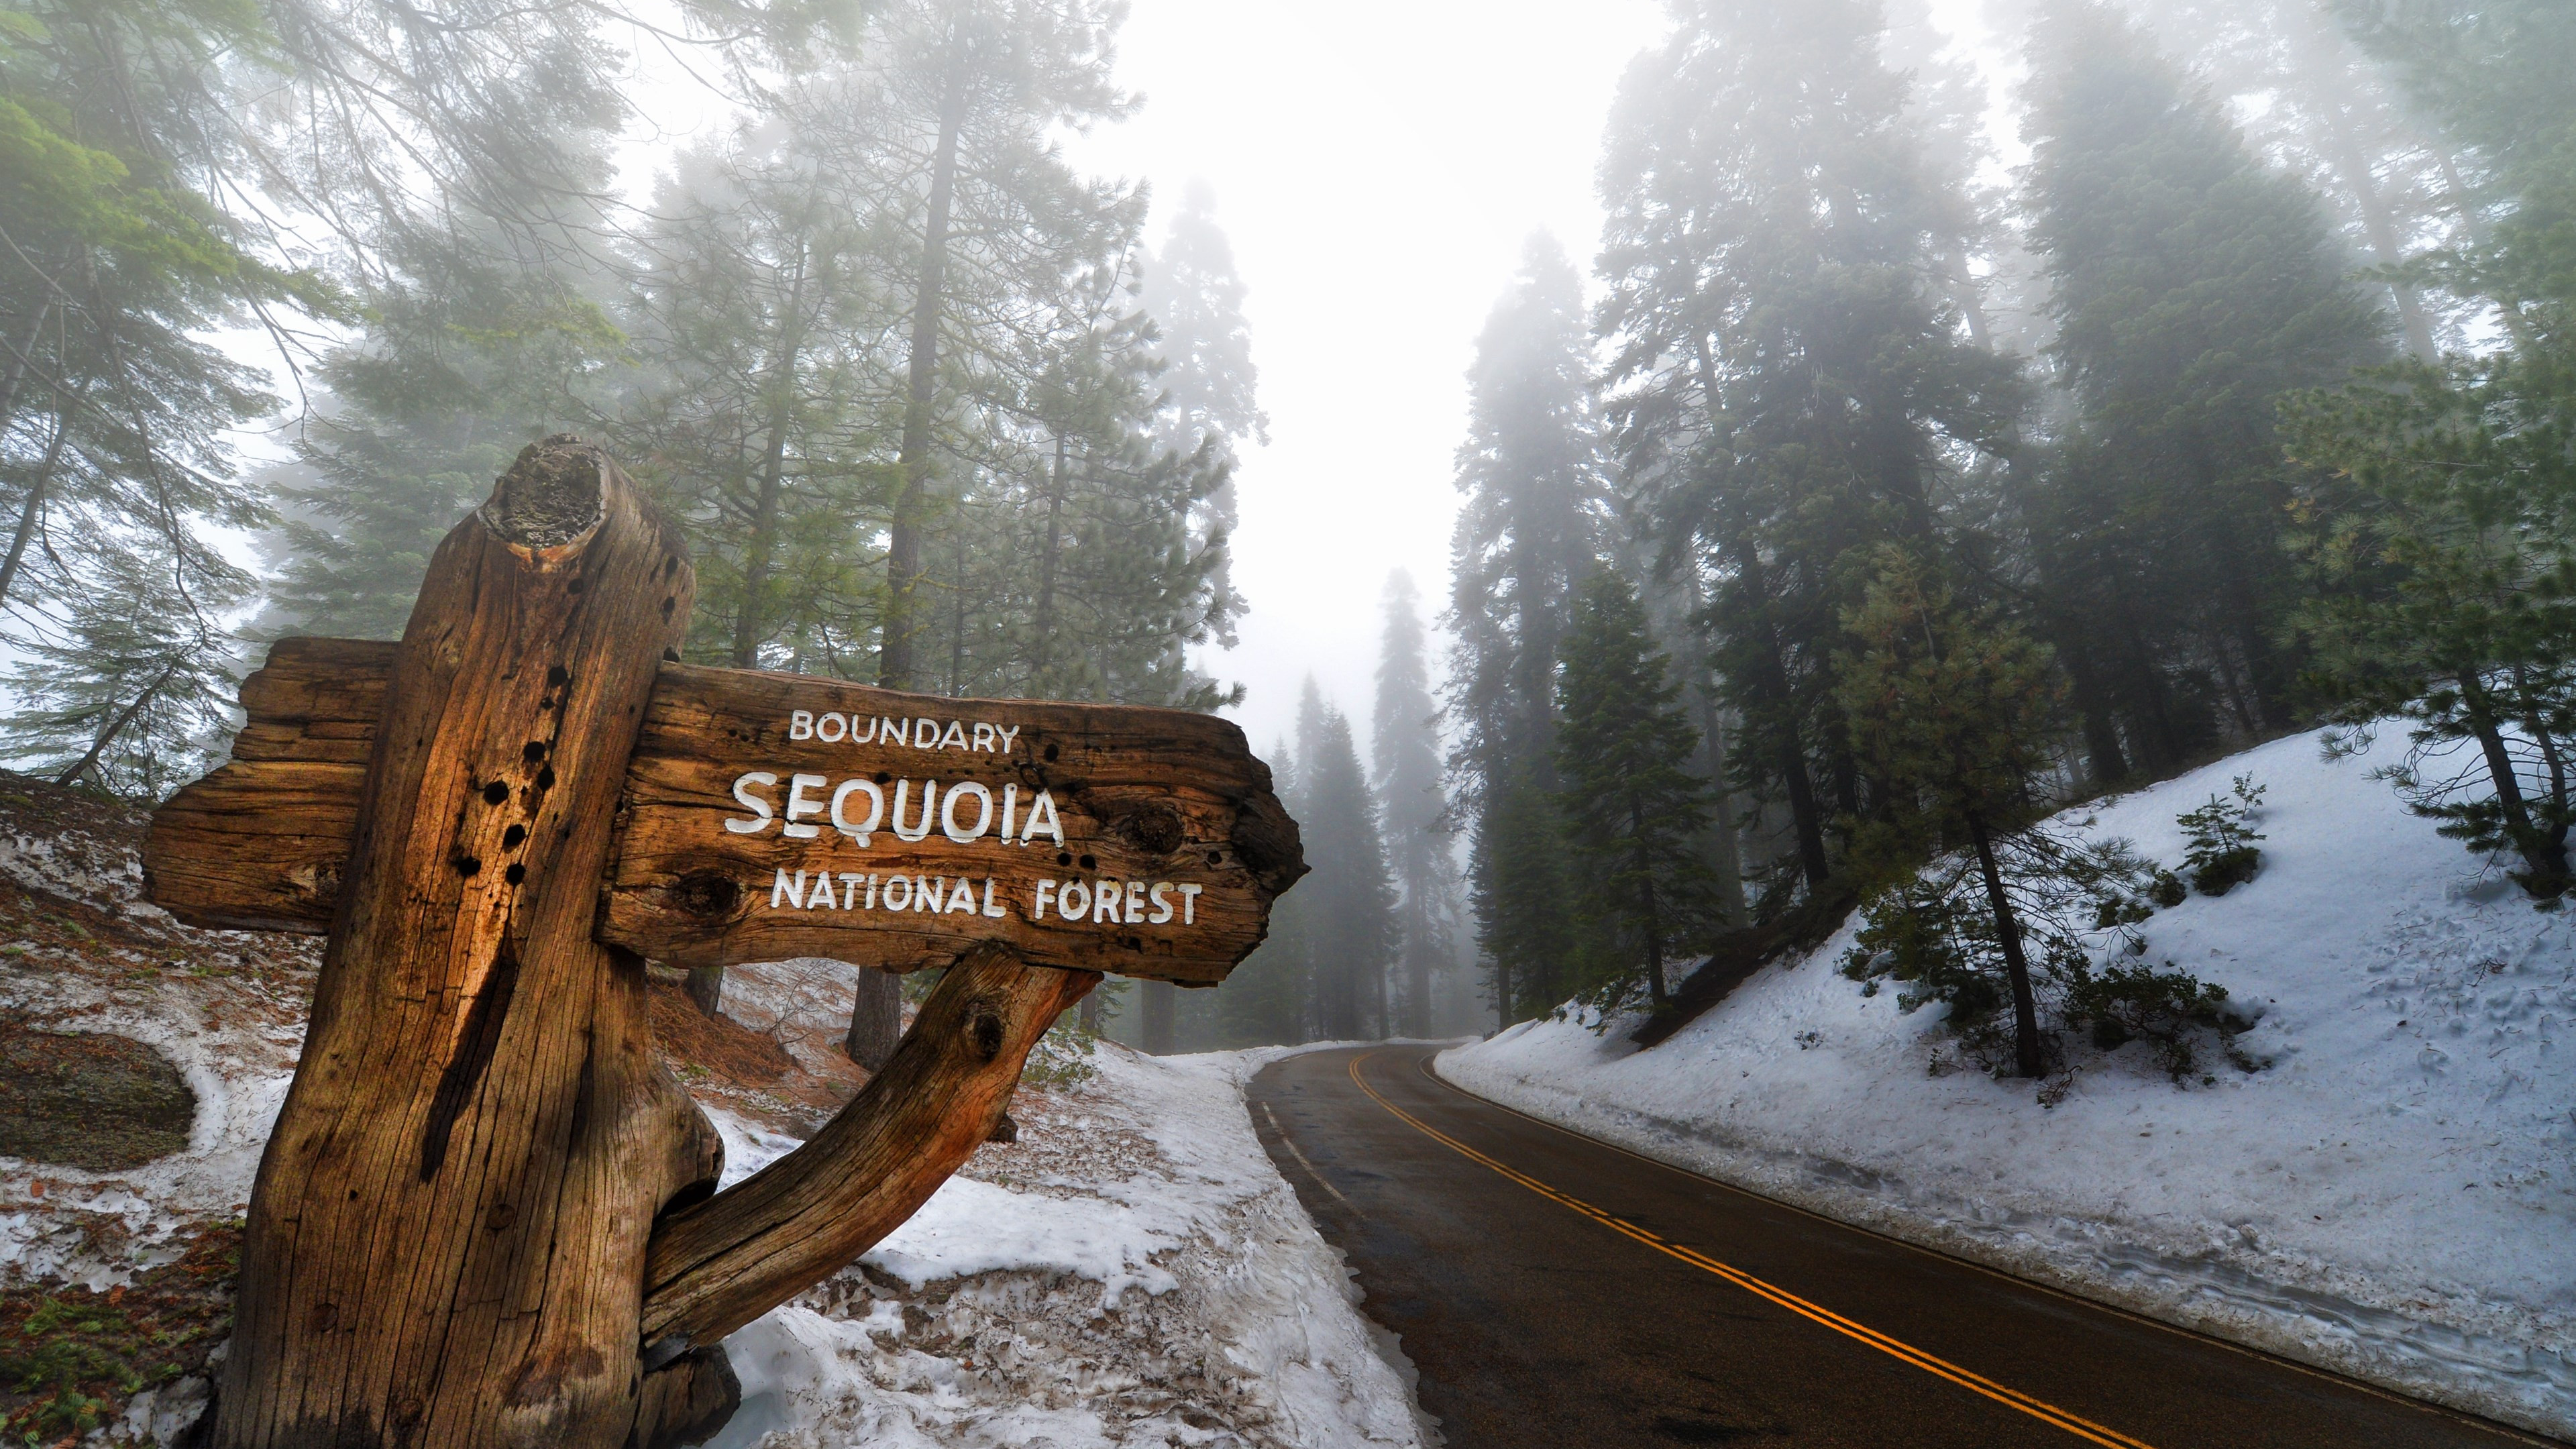 Sequoia National Park wallpaper 3840x2160